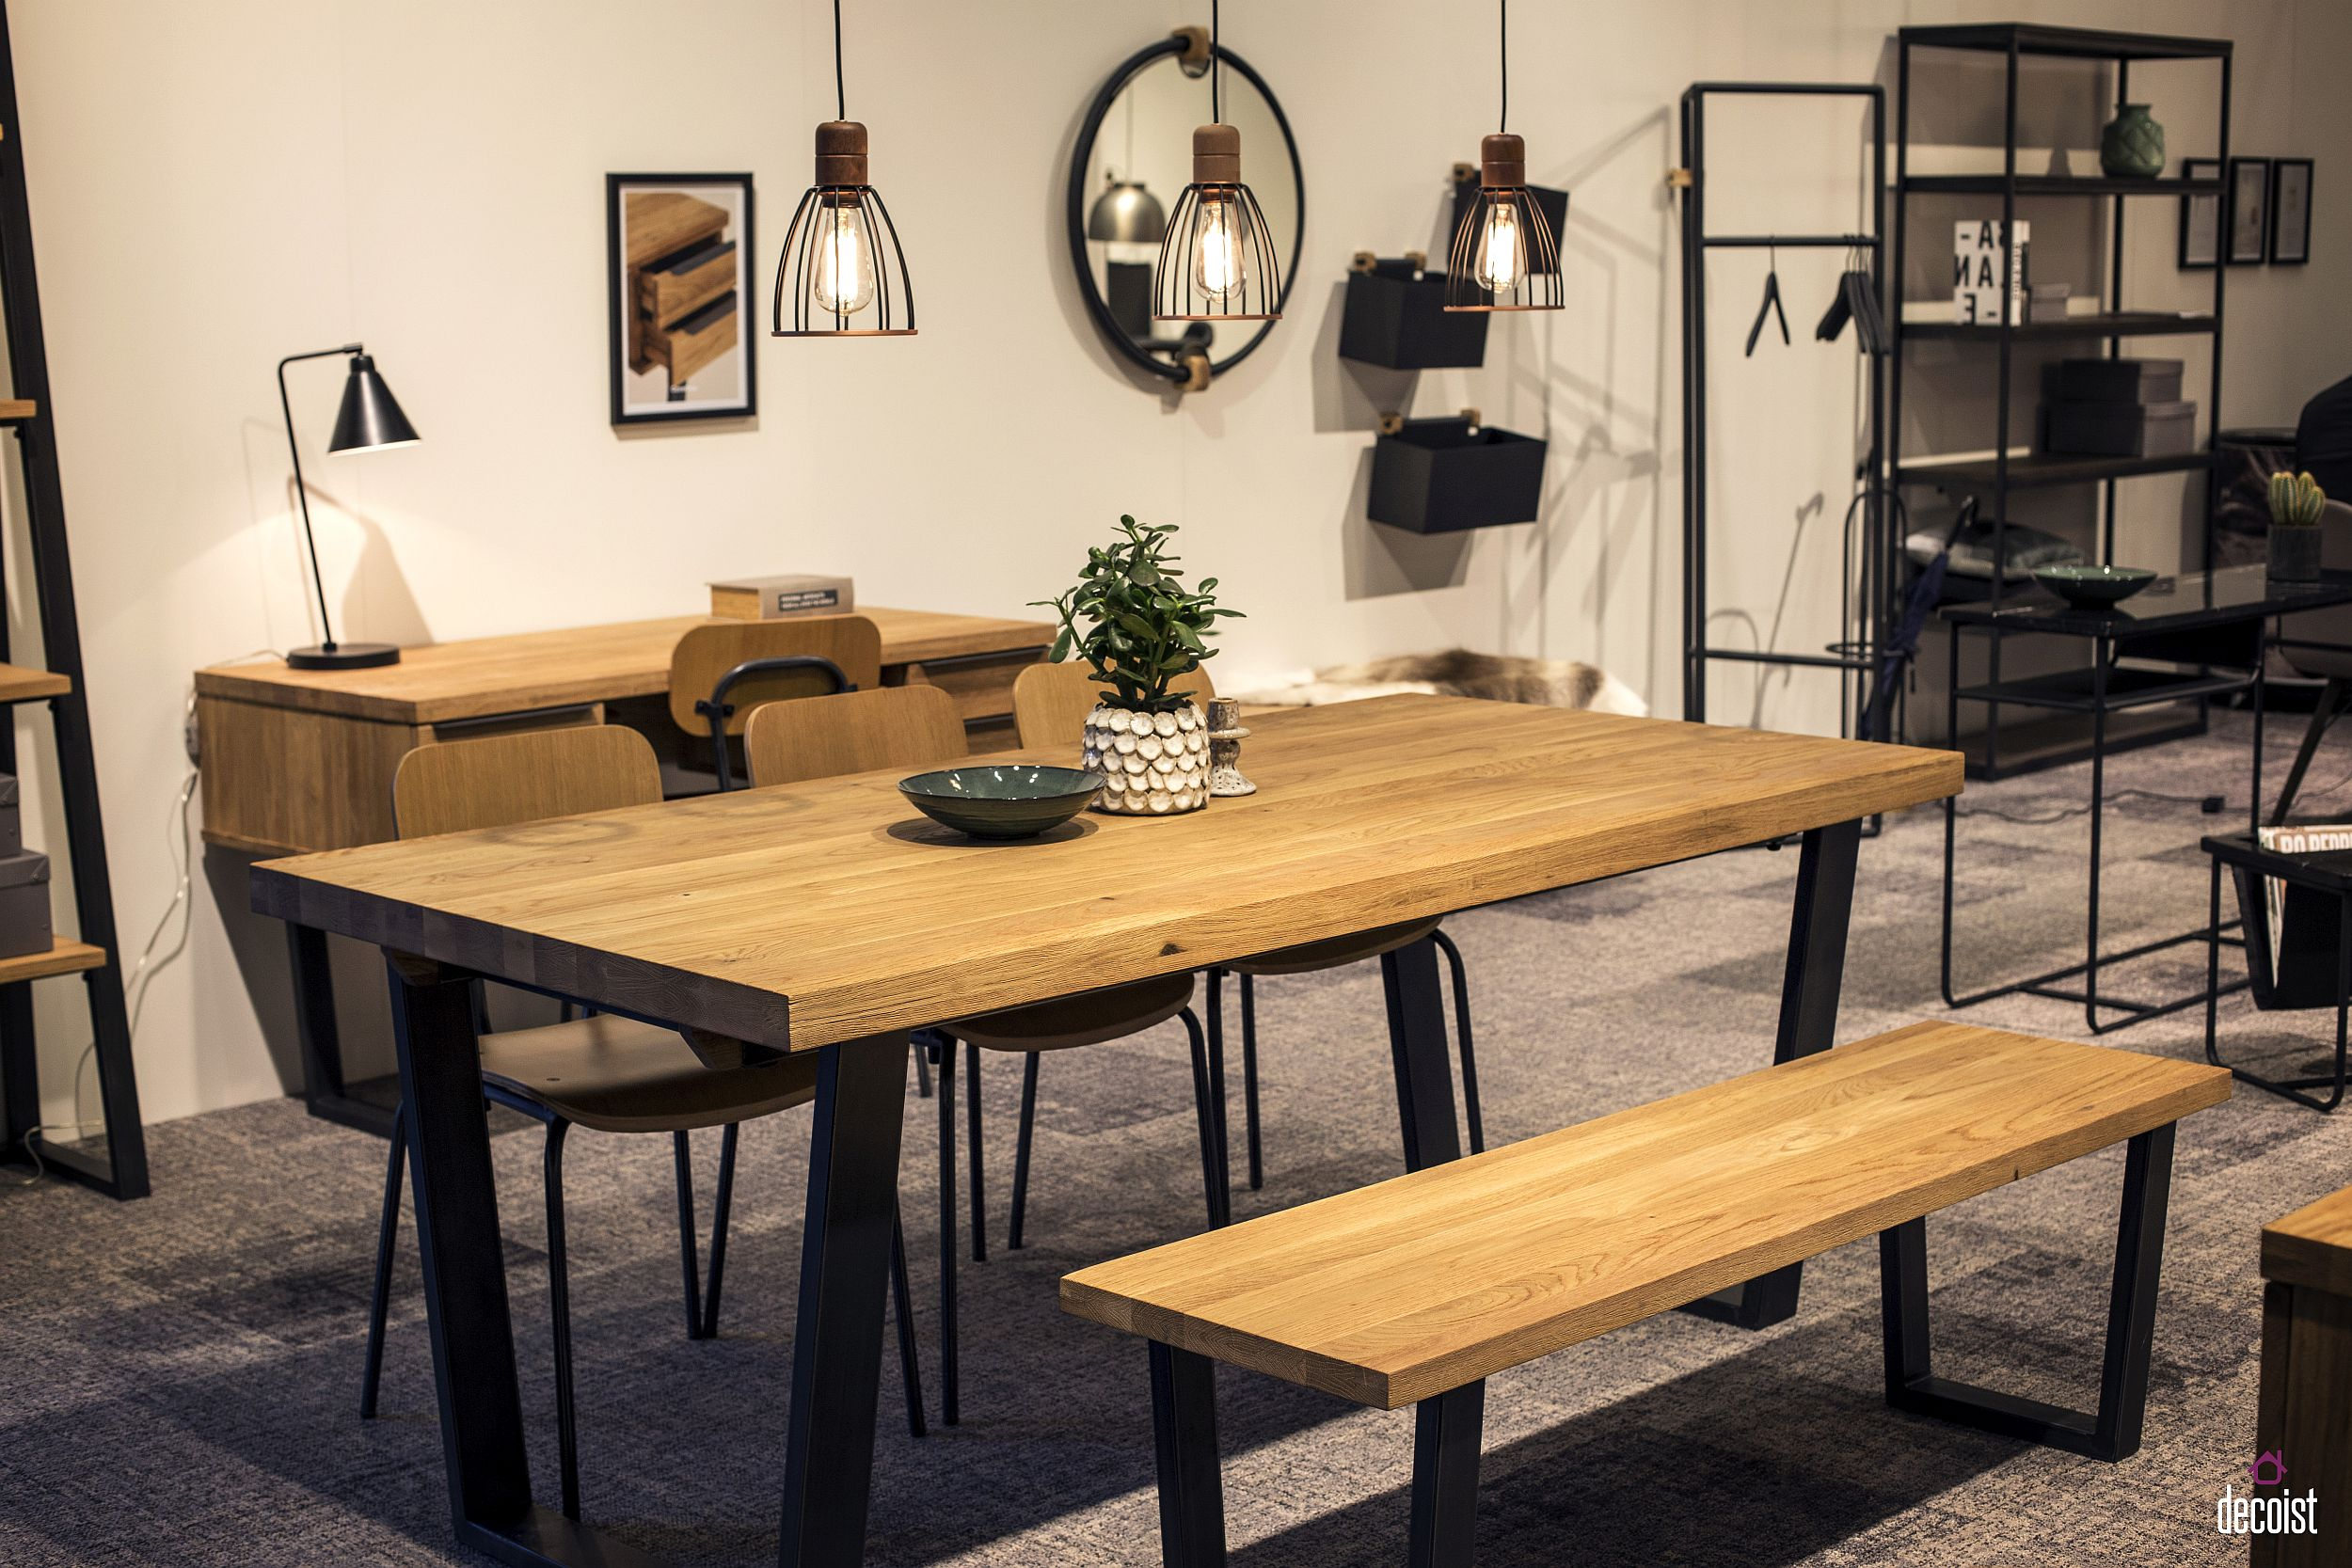 Wooden bench in the dining table adds beauty and visual contrast